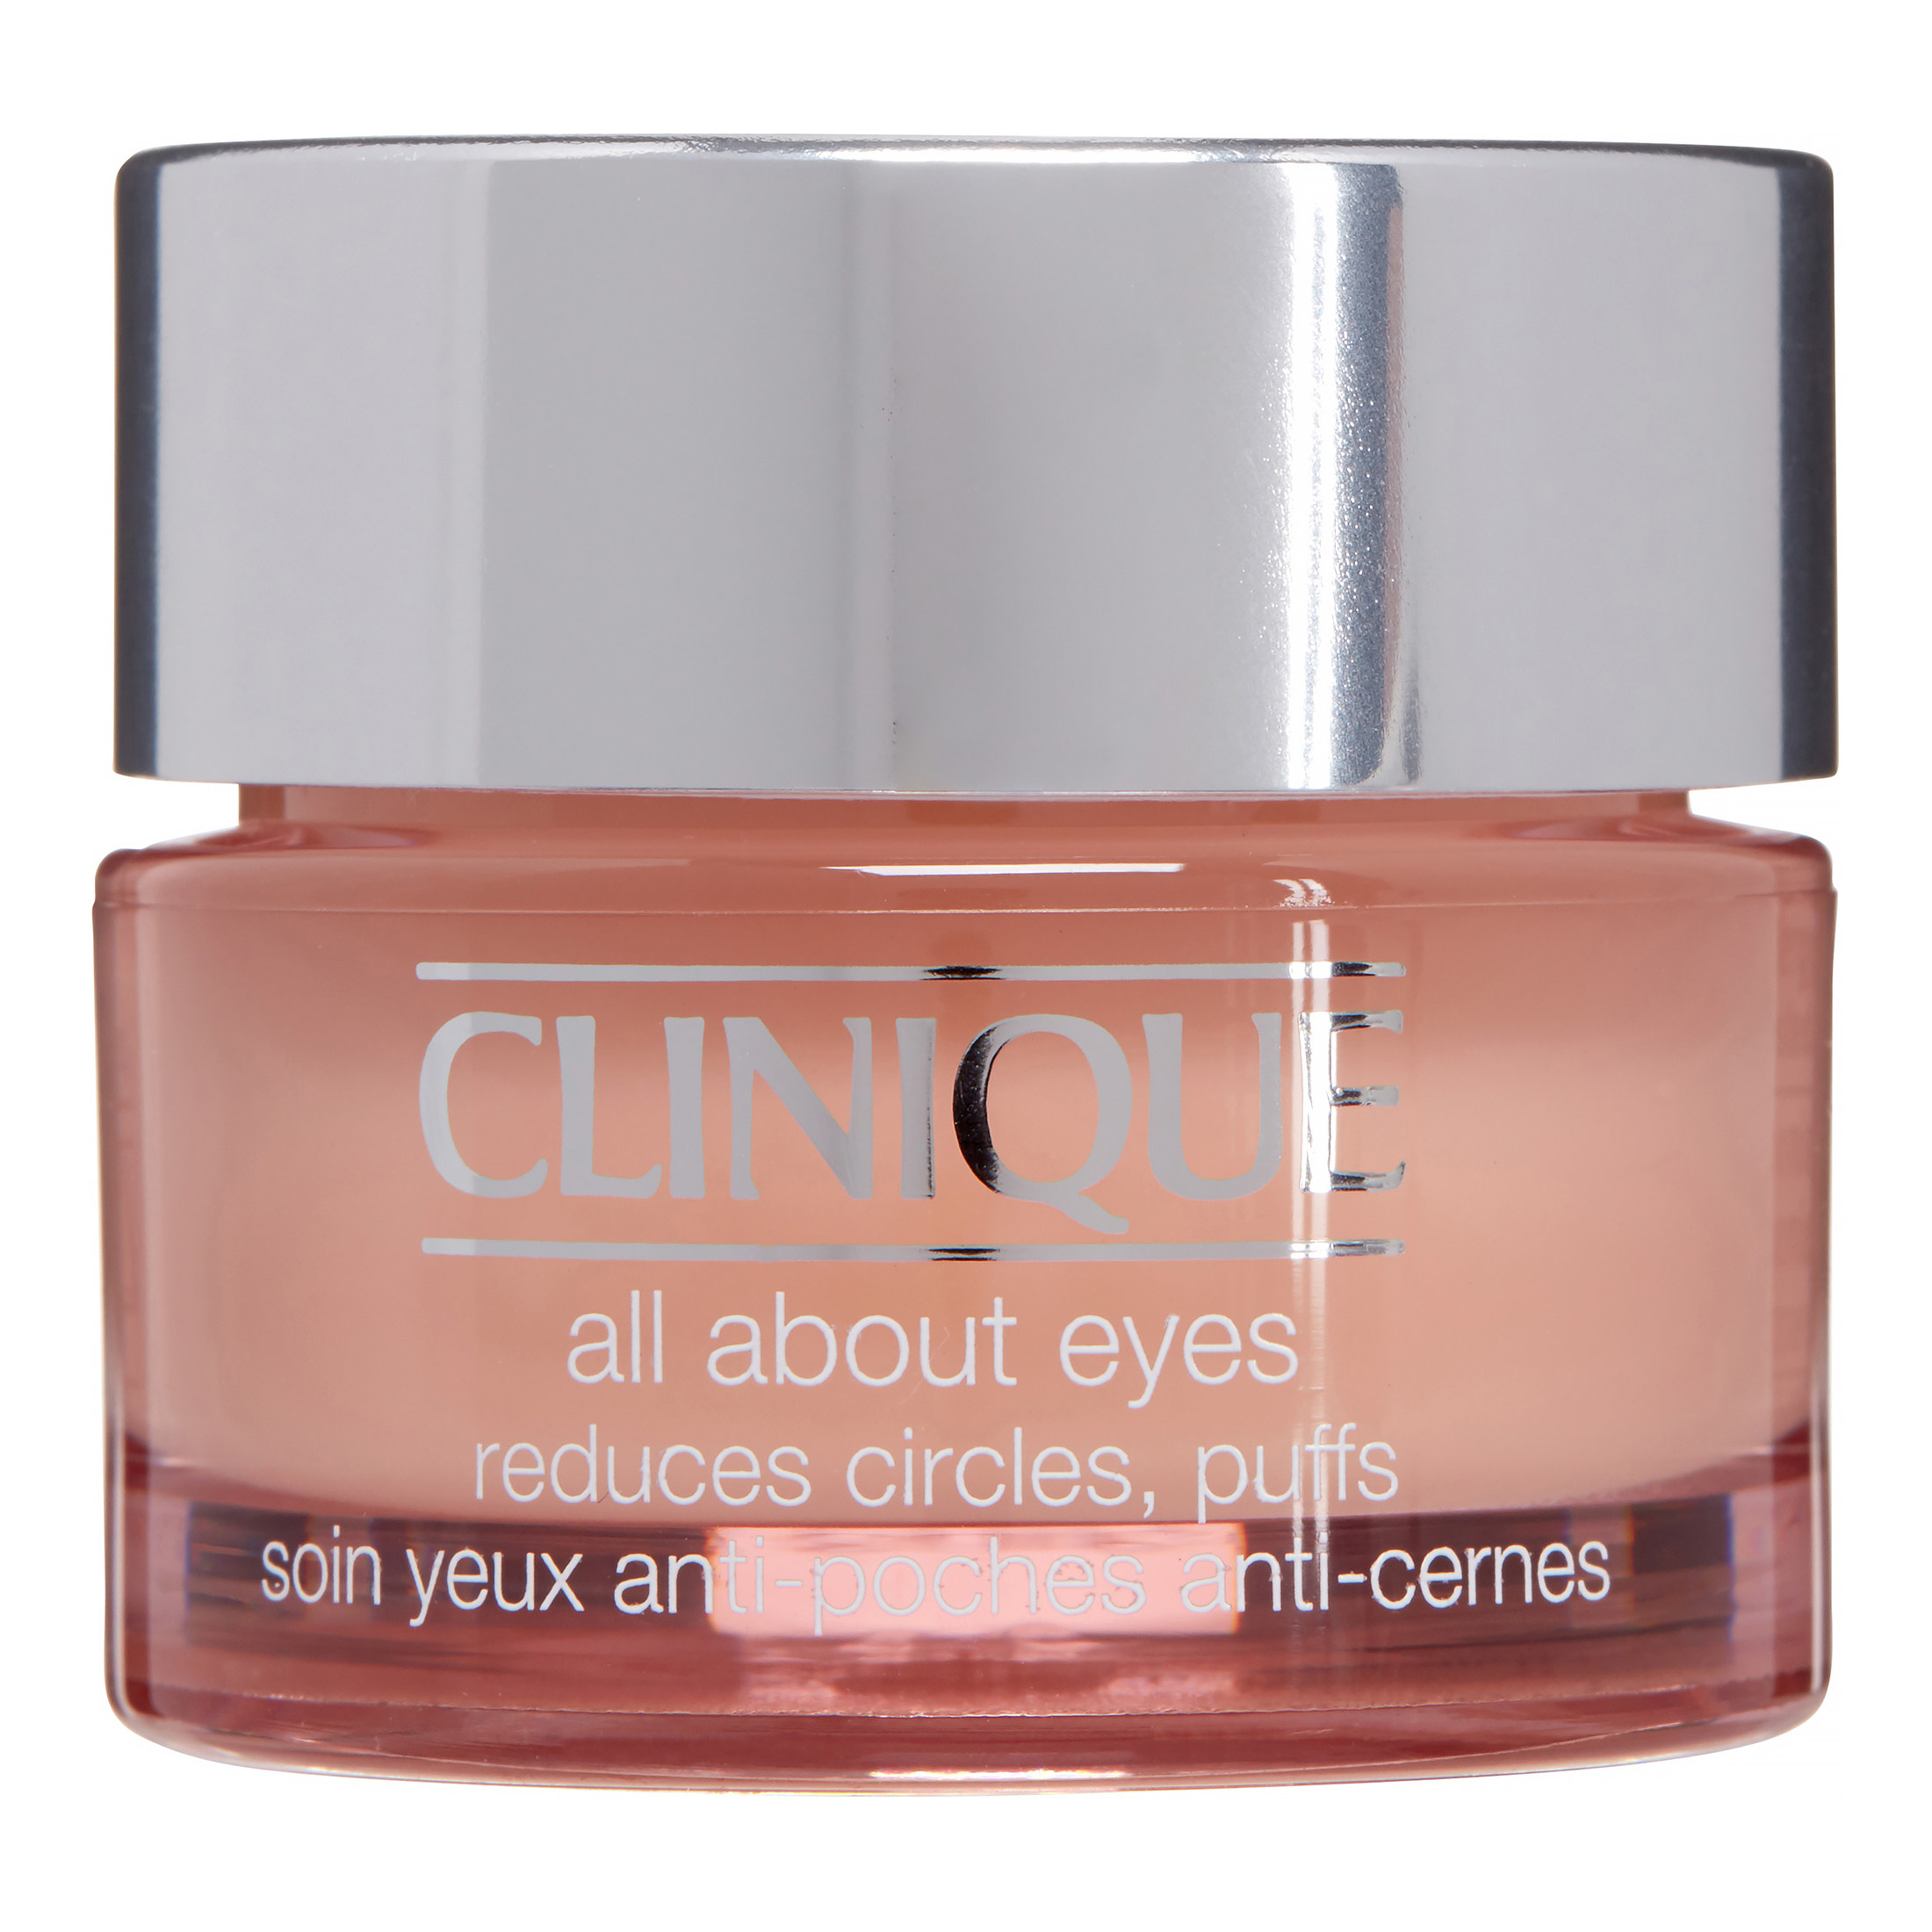 Clinique all about the eyes product in pink bottle